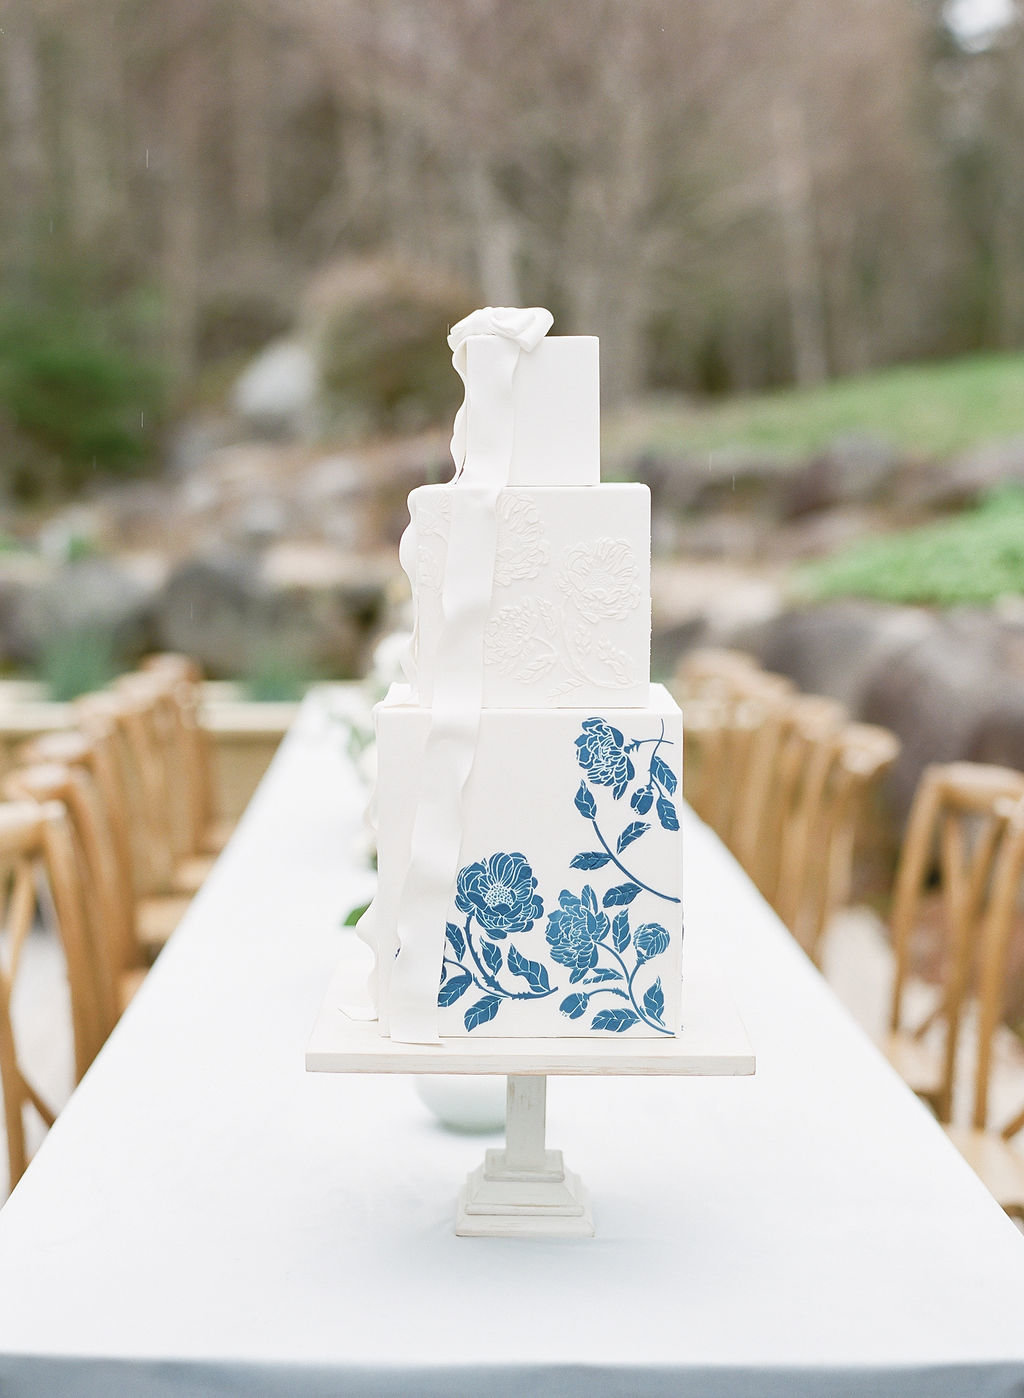 Jacqueline Anne Photography, The One Day Workshop, Halifax Wedding Photographer,  Cake Babes Wedding Cake